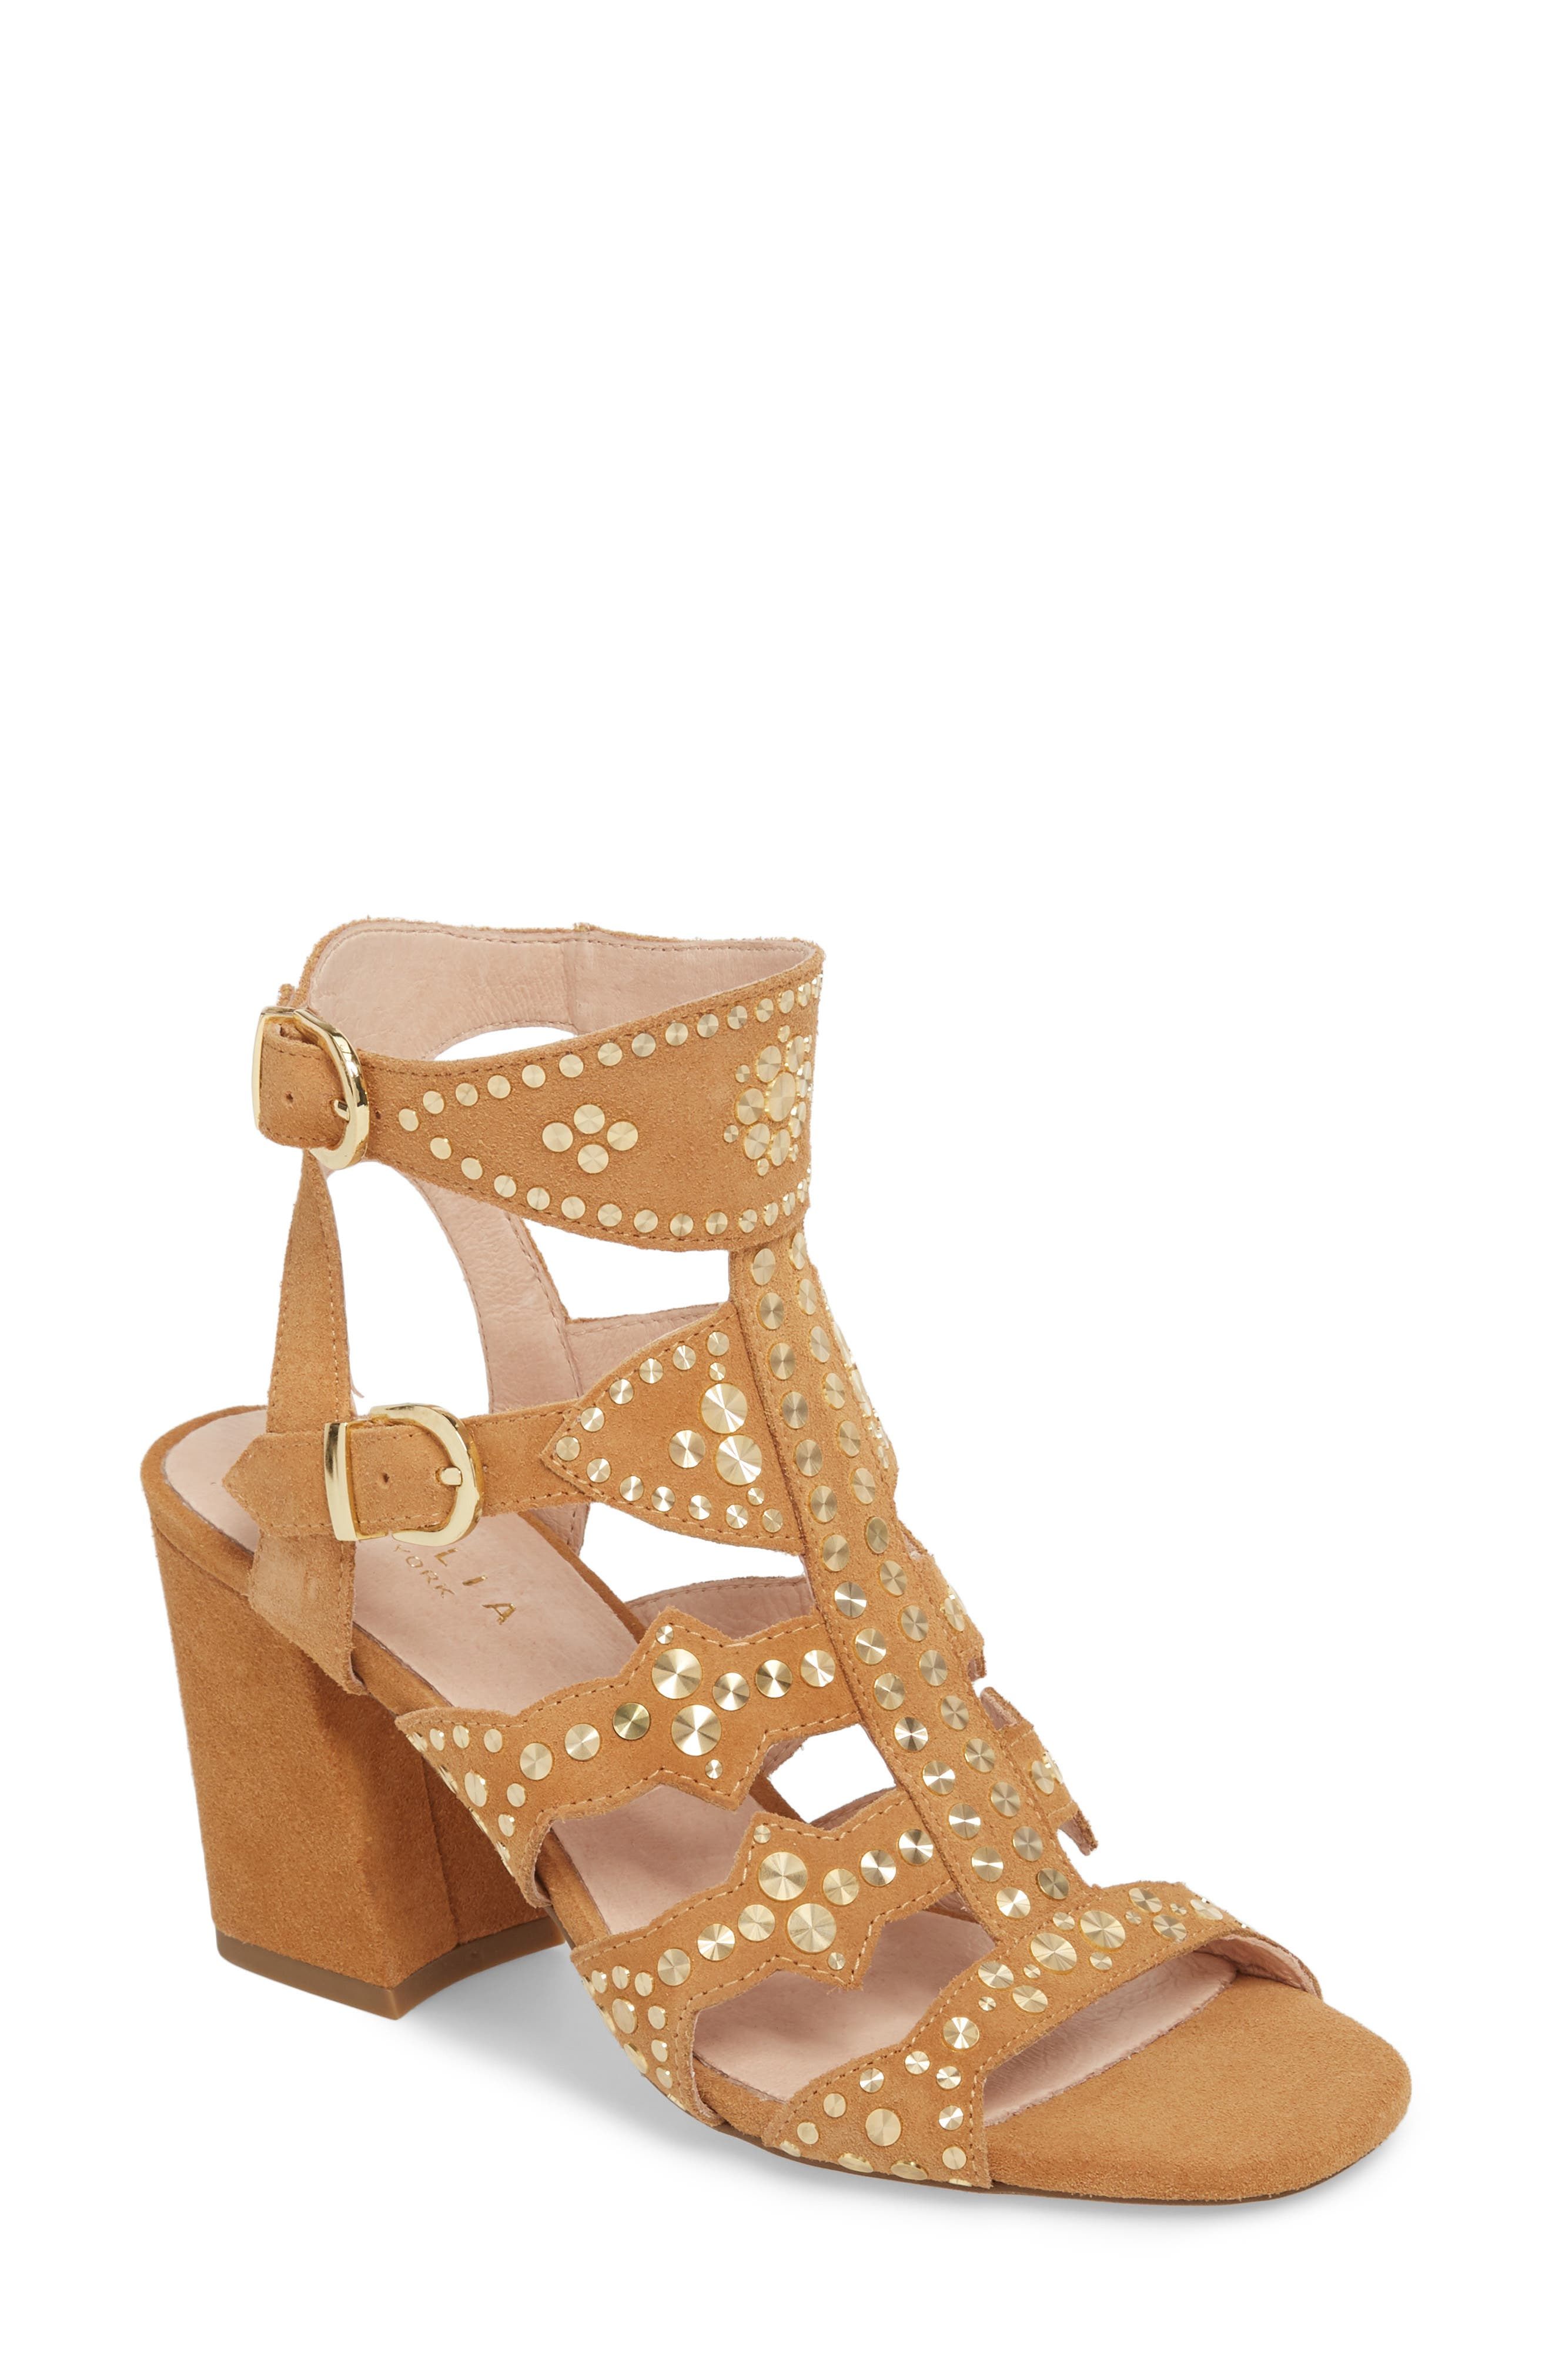 Cosmo Studded Sandal,                             Main thumbnail 1, color,                             Sand Suede